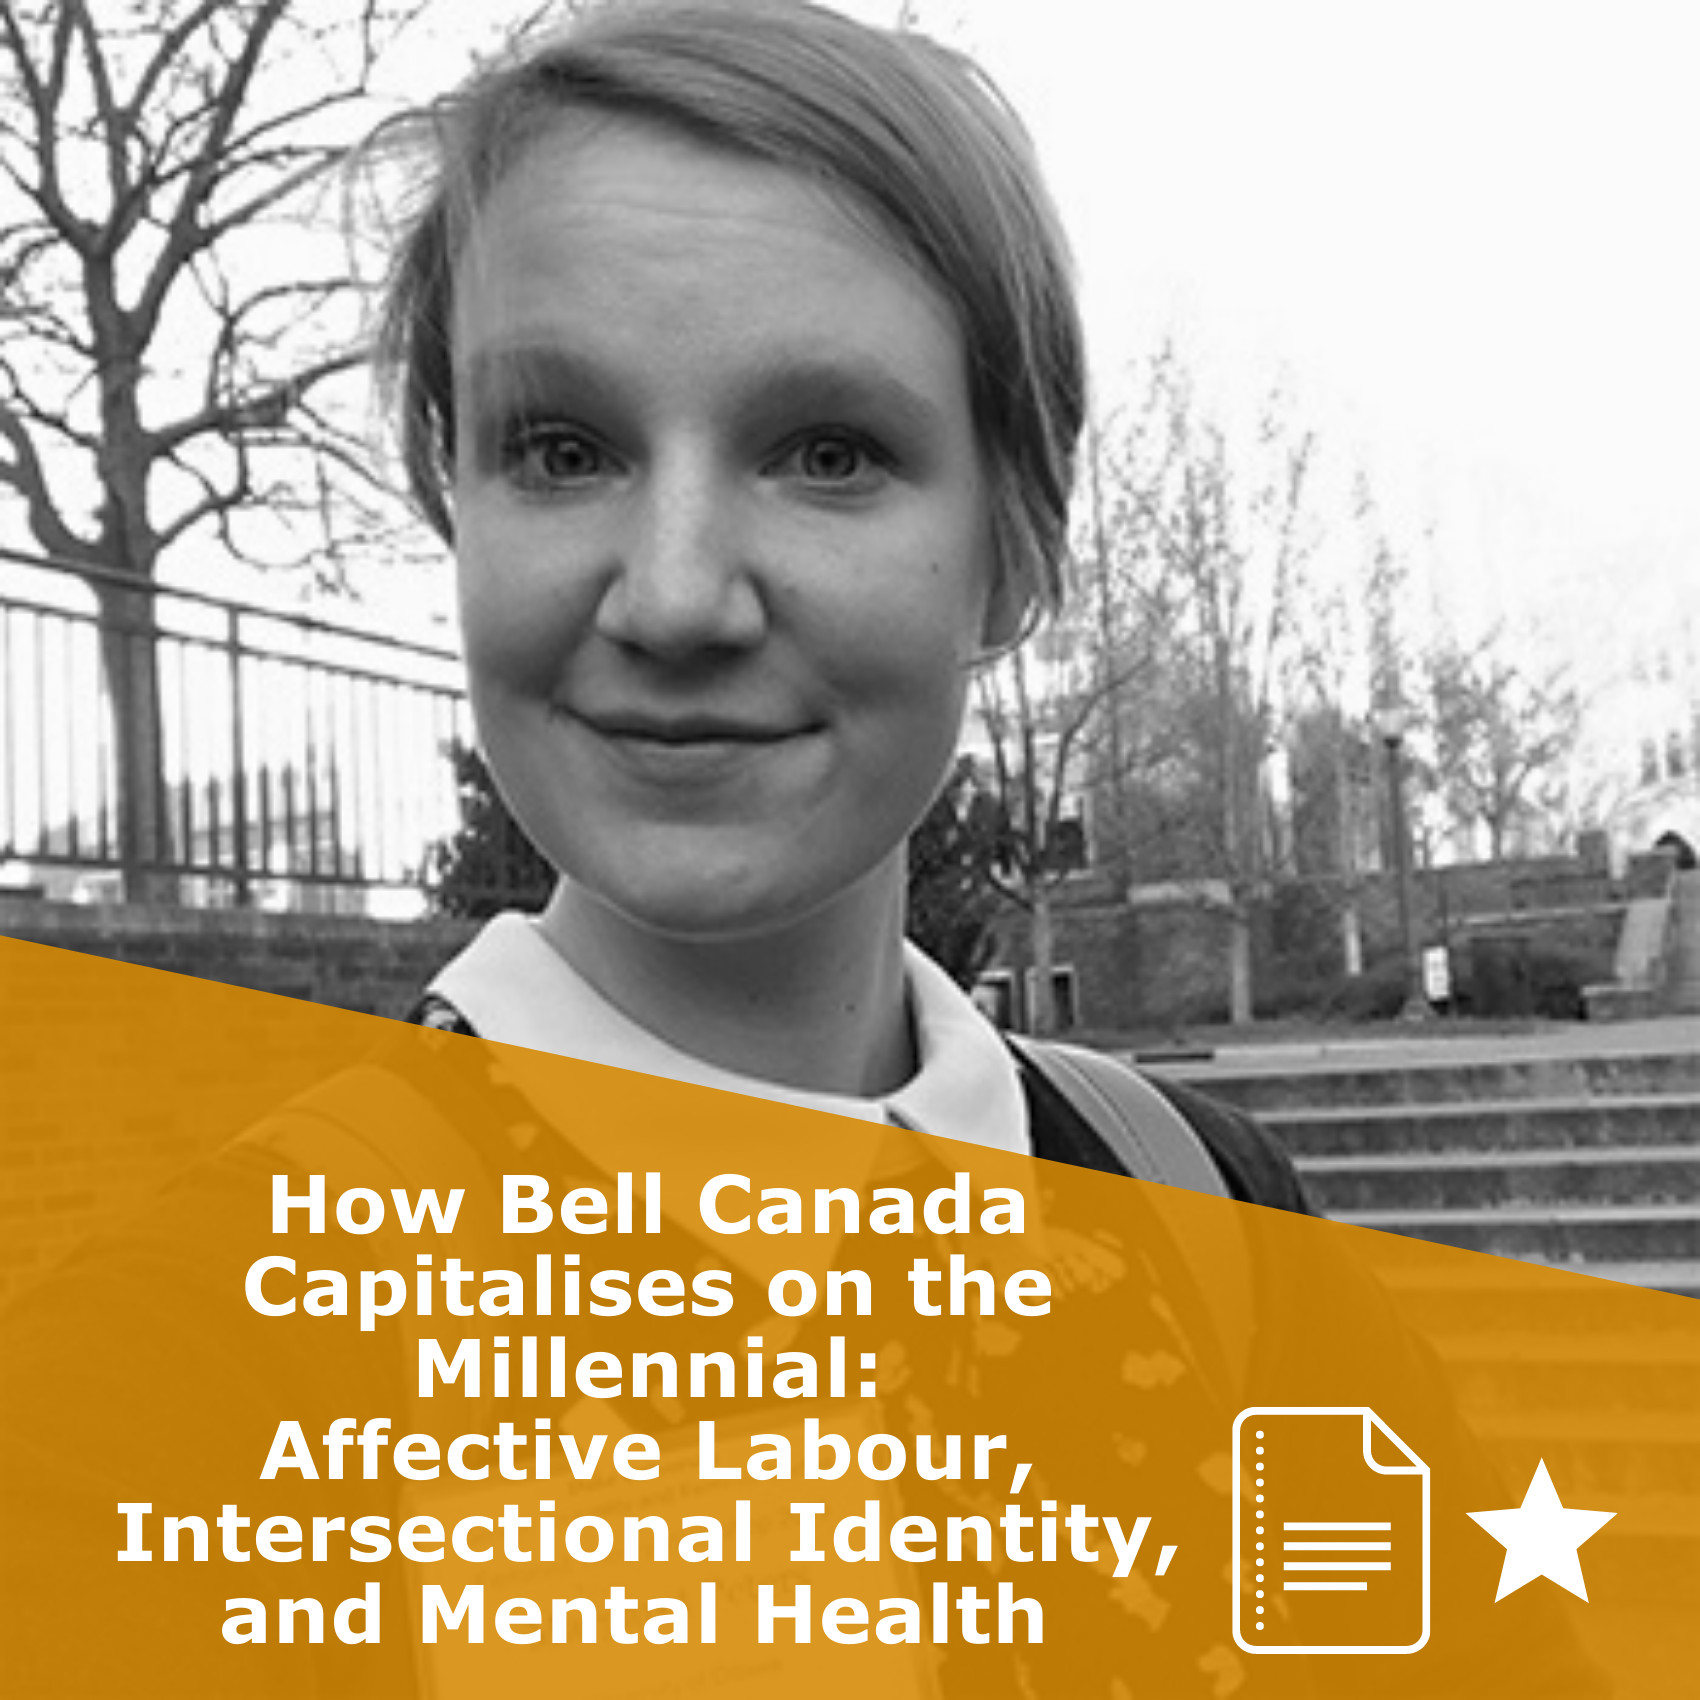 Title 'How Bell Canada Capitalises on the Millennial: Affective Labour, Intersectional Identity, and Mental Health'. It is an article rated 1 star.